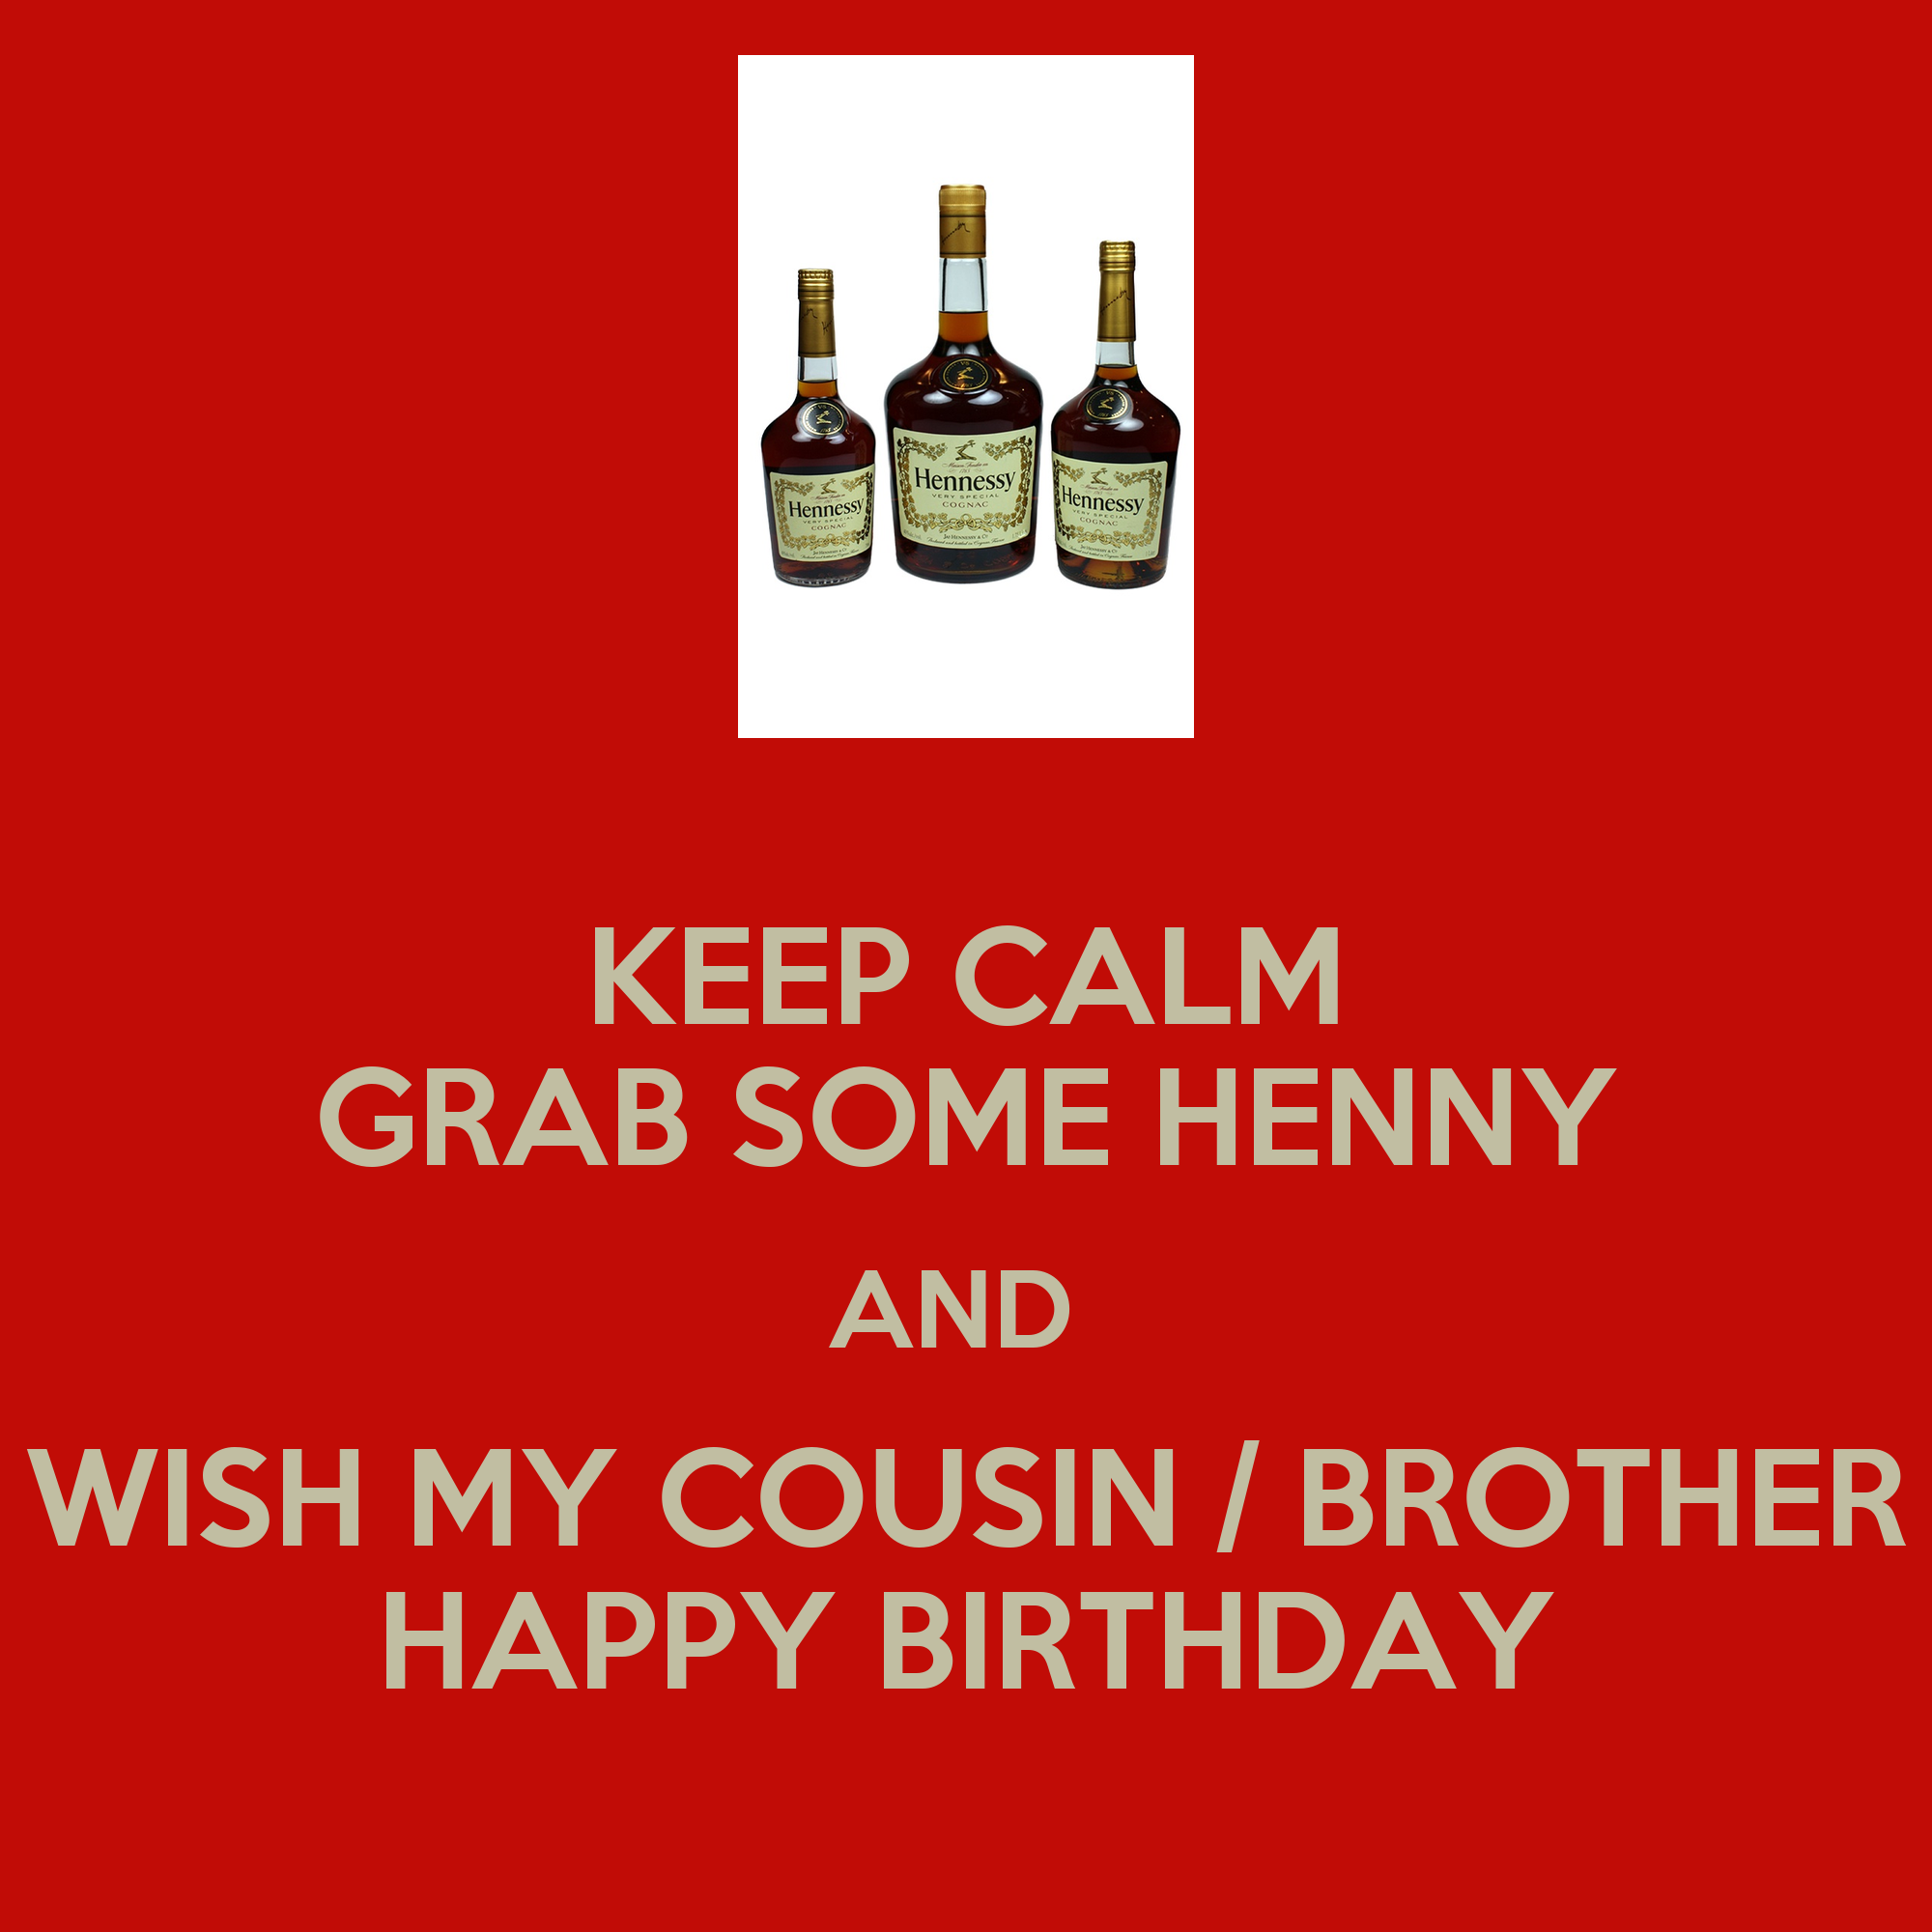 Happy Birthday Wishes To Cousin Brother Happy Birthday Wishes To My Cousin